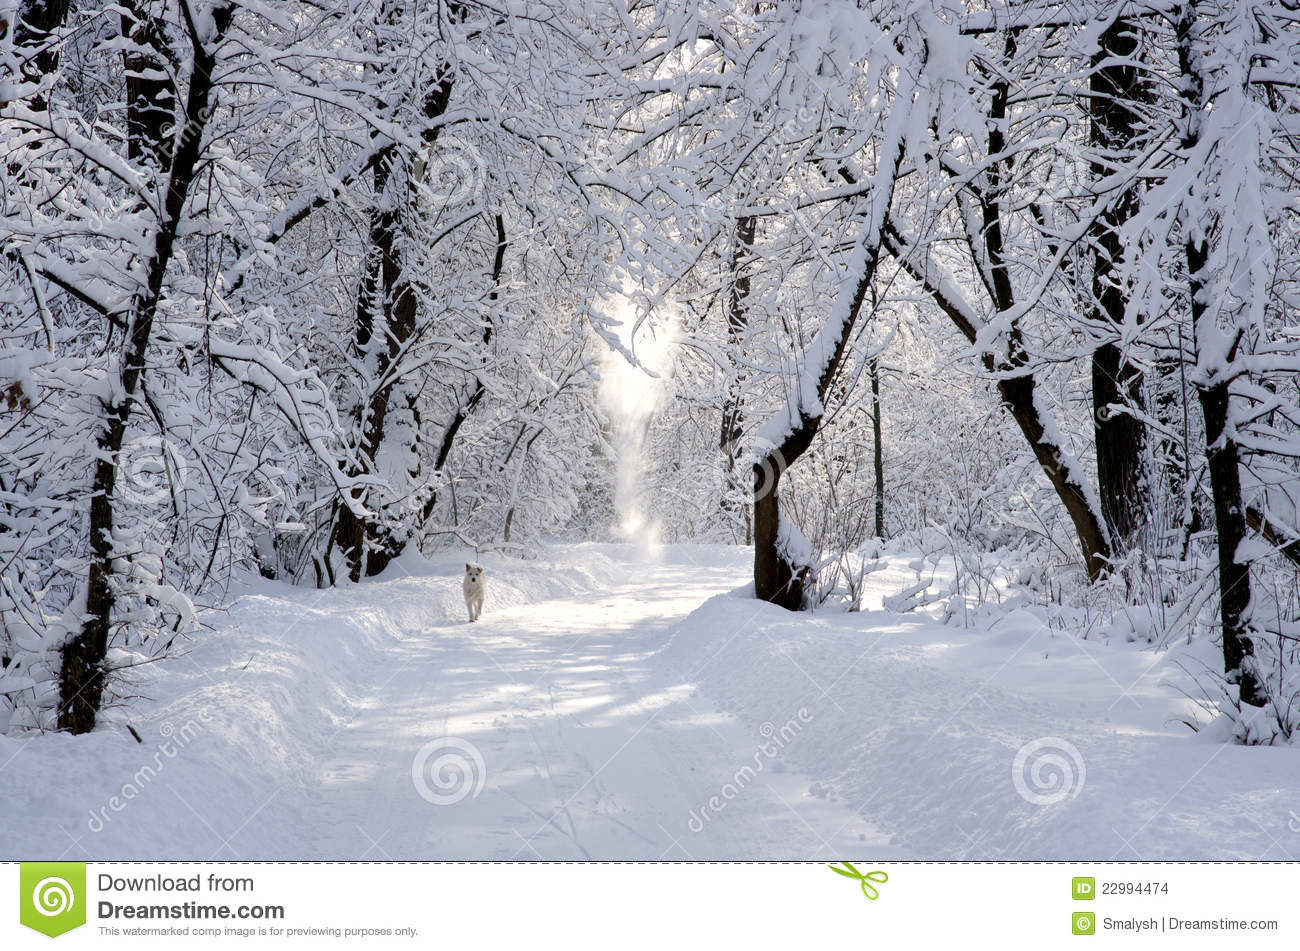 Snowy Park Path wallpaper - Photography wallpapers - #16247